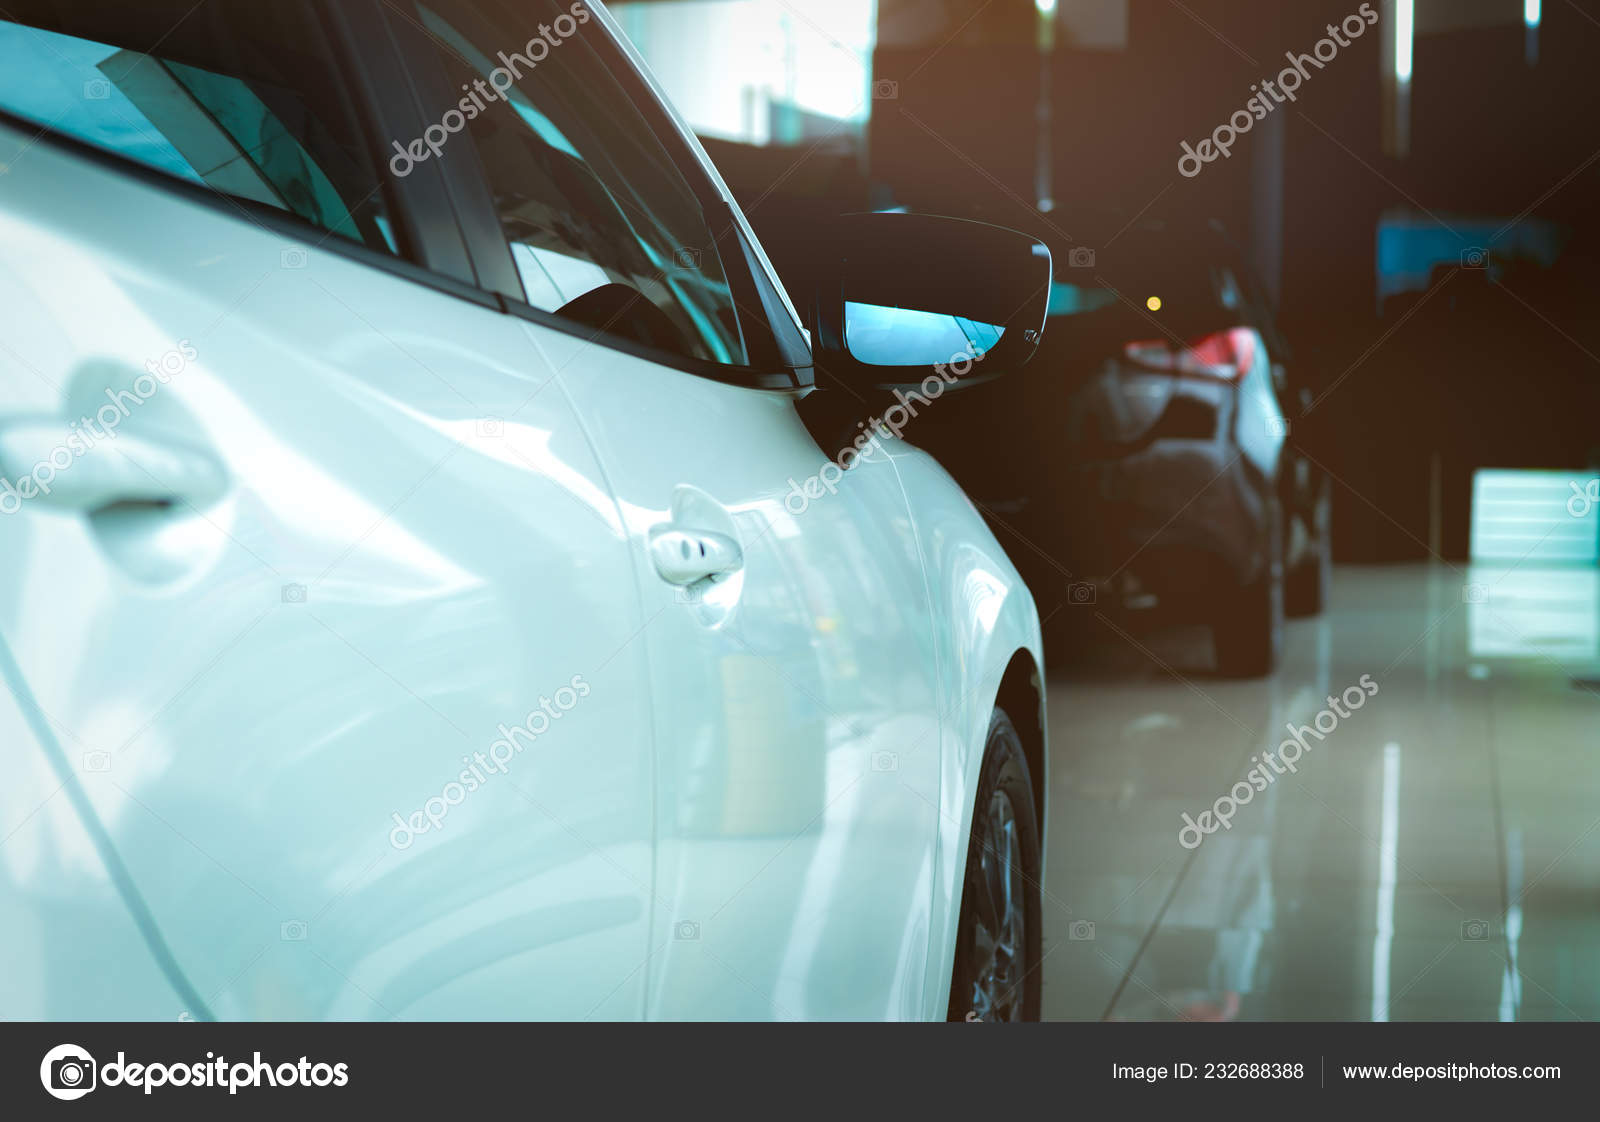 New Luxury Shiny Suv Compact Car Parked Modern Showroom Car Stock Photo C Fahroni 232688388